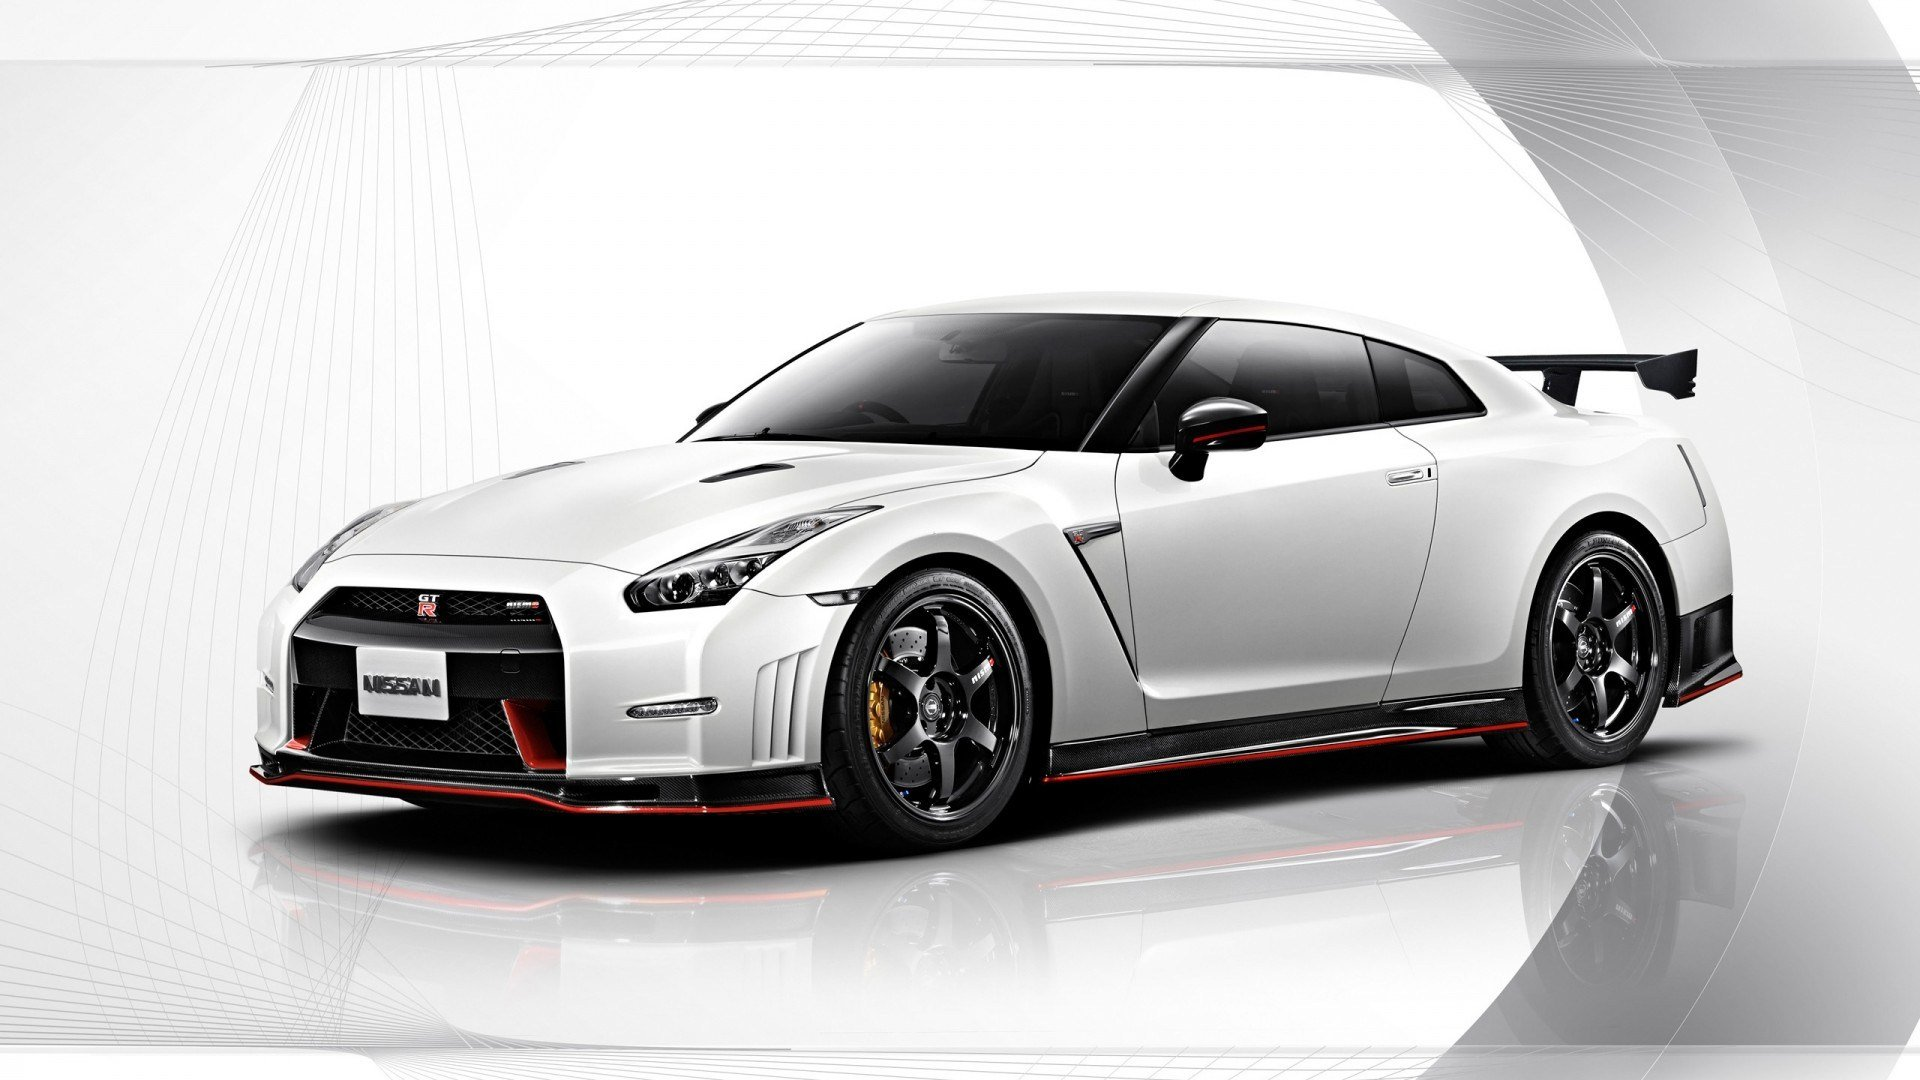 Latest 2015 Nissan Gt R Nismo 2 Wallpaper Hd Car Wallpapers Free Download